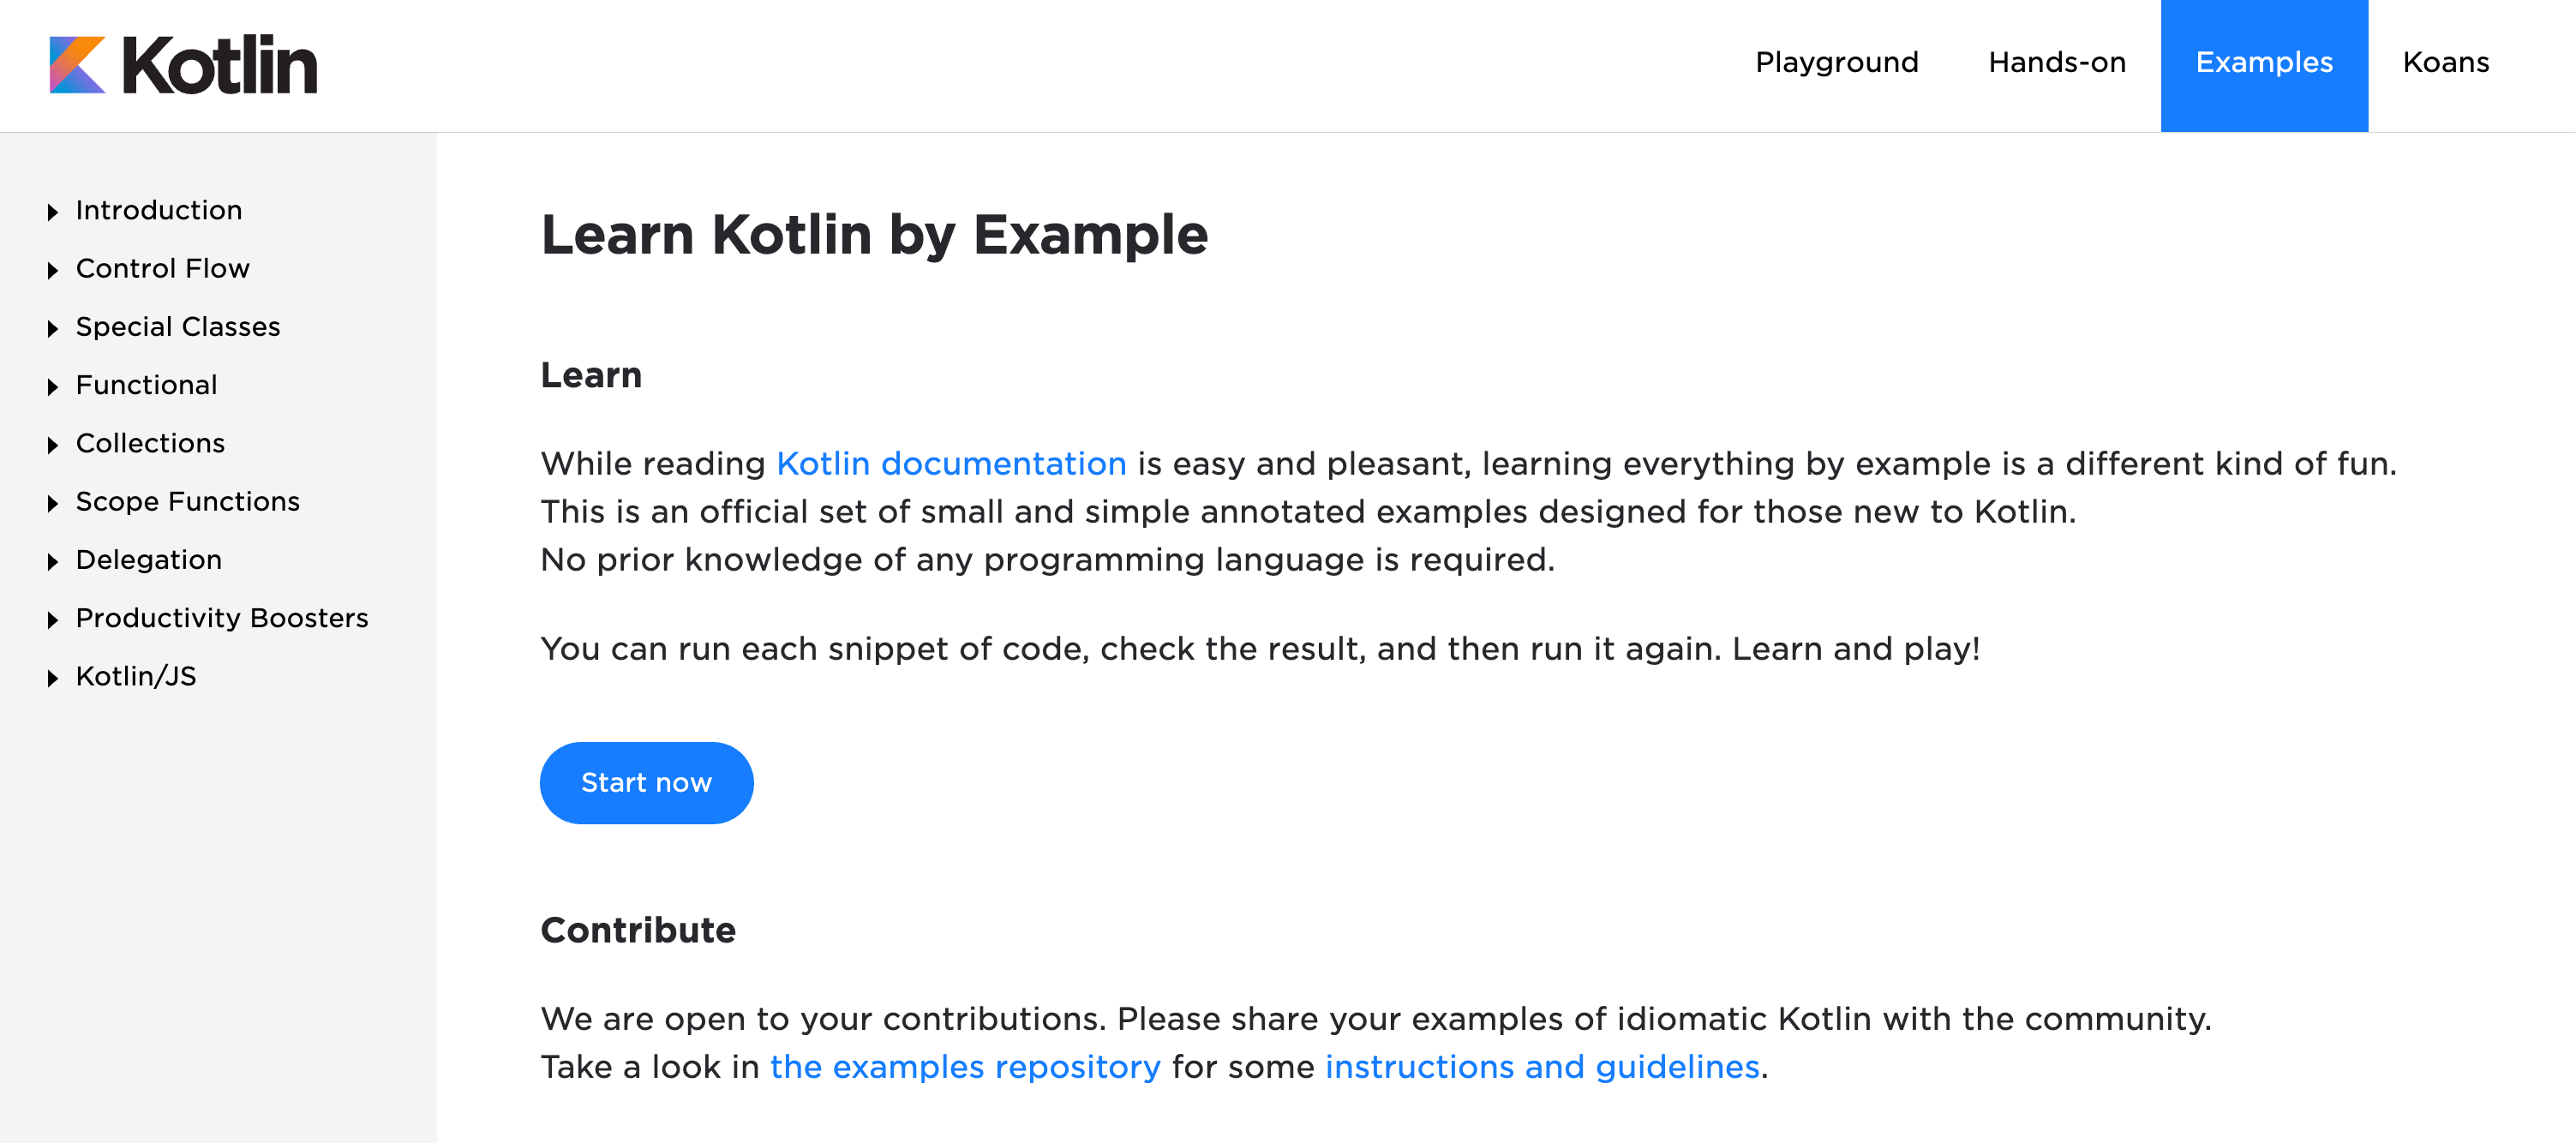 Learn Kotlin by Example